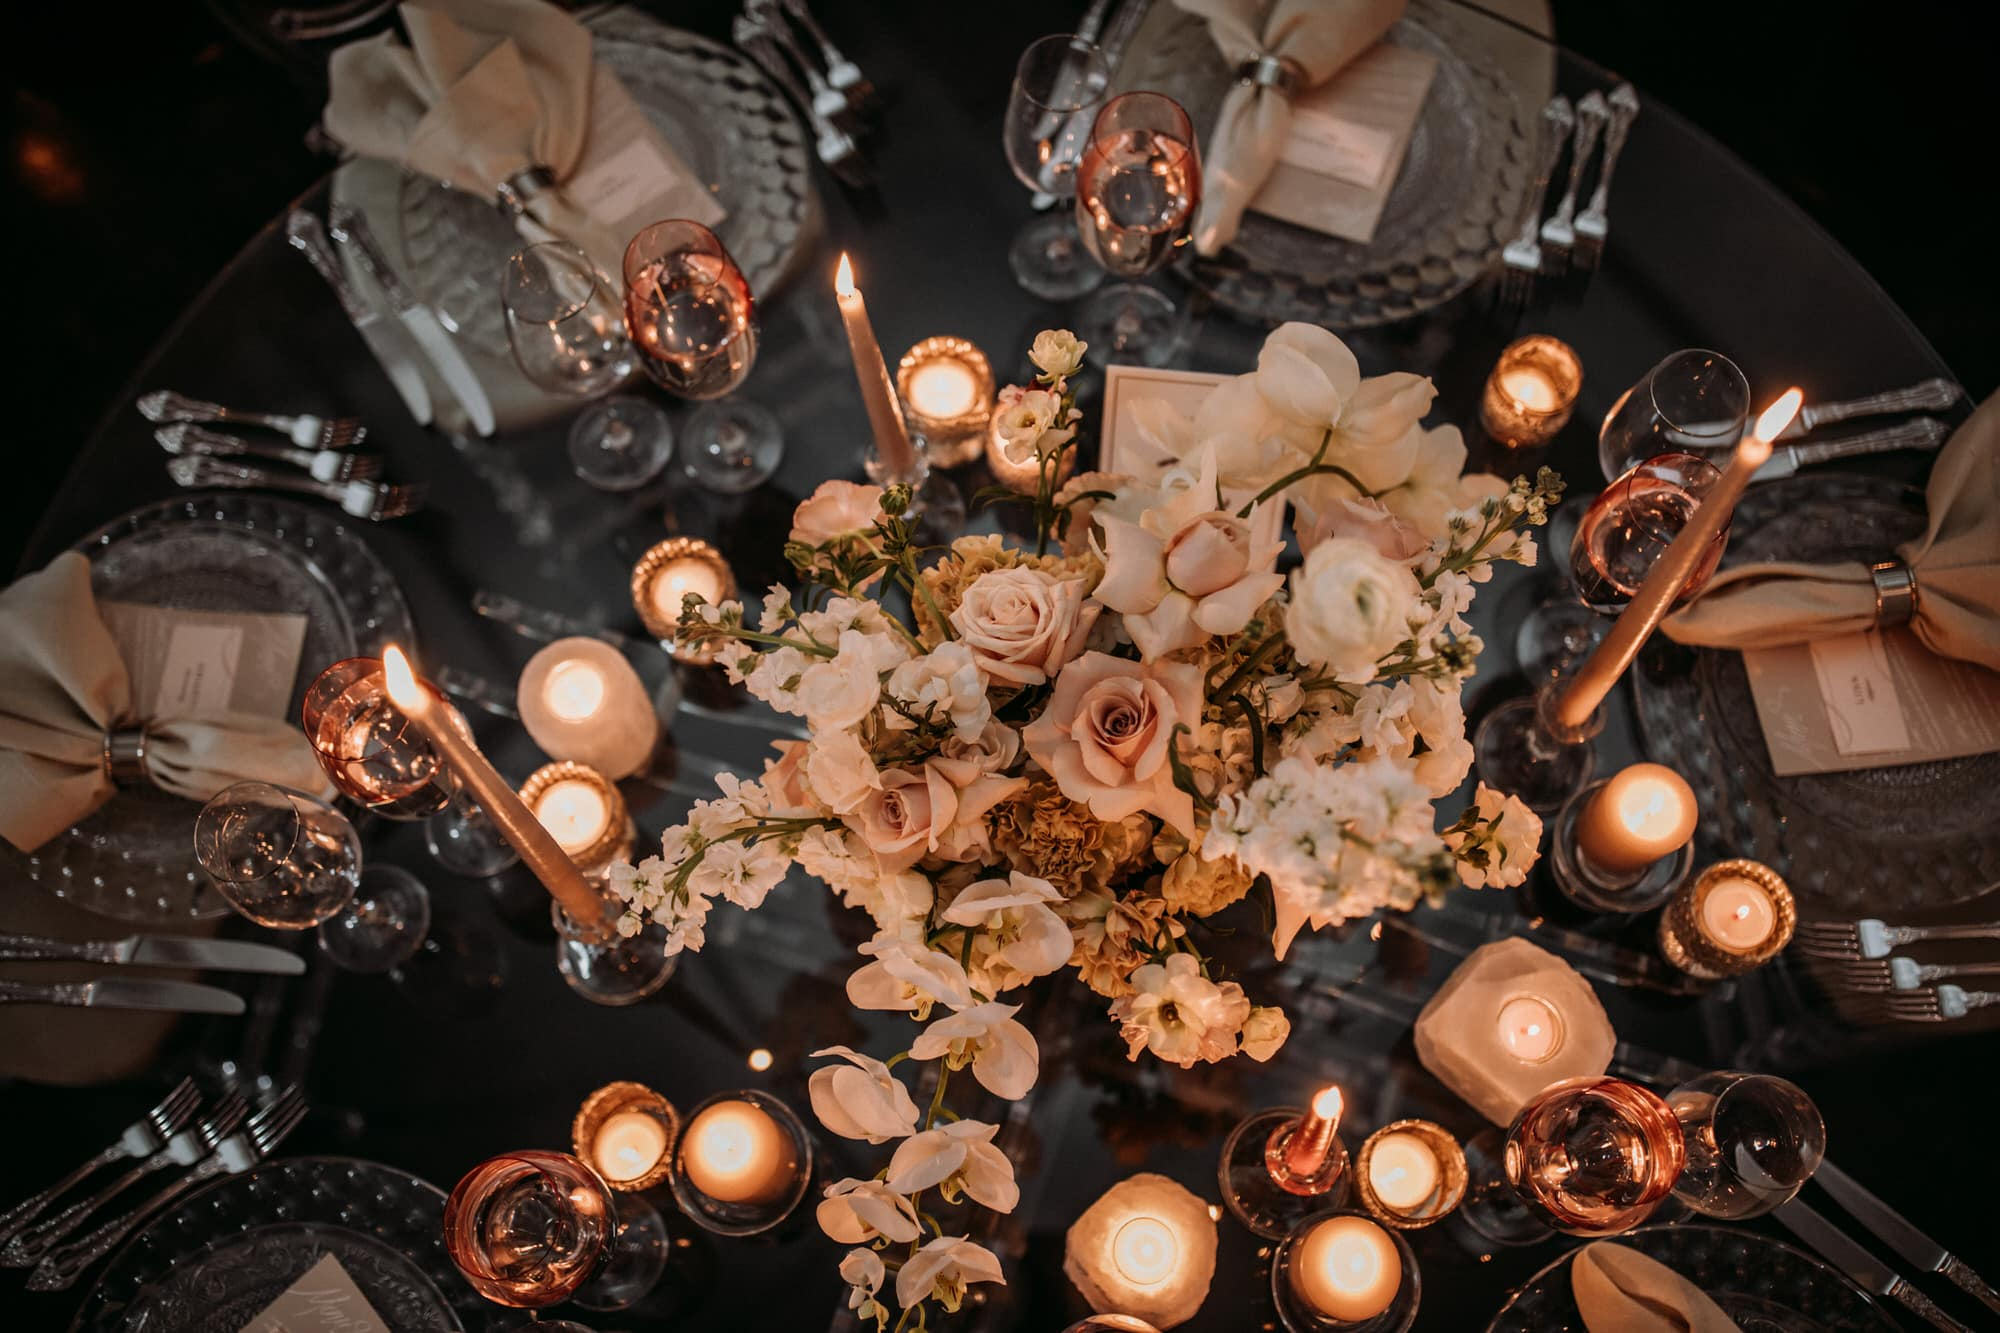 Entrepots Dominion Wedding In Montreal - Peach and black table decor - Wedding Photographer Brent Calis